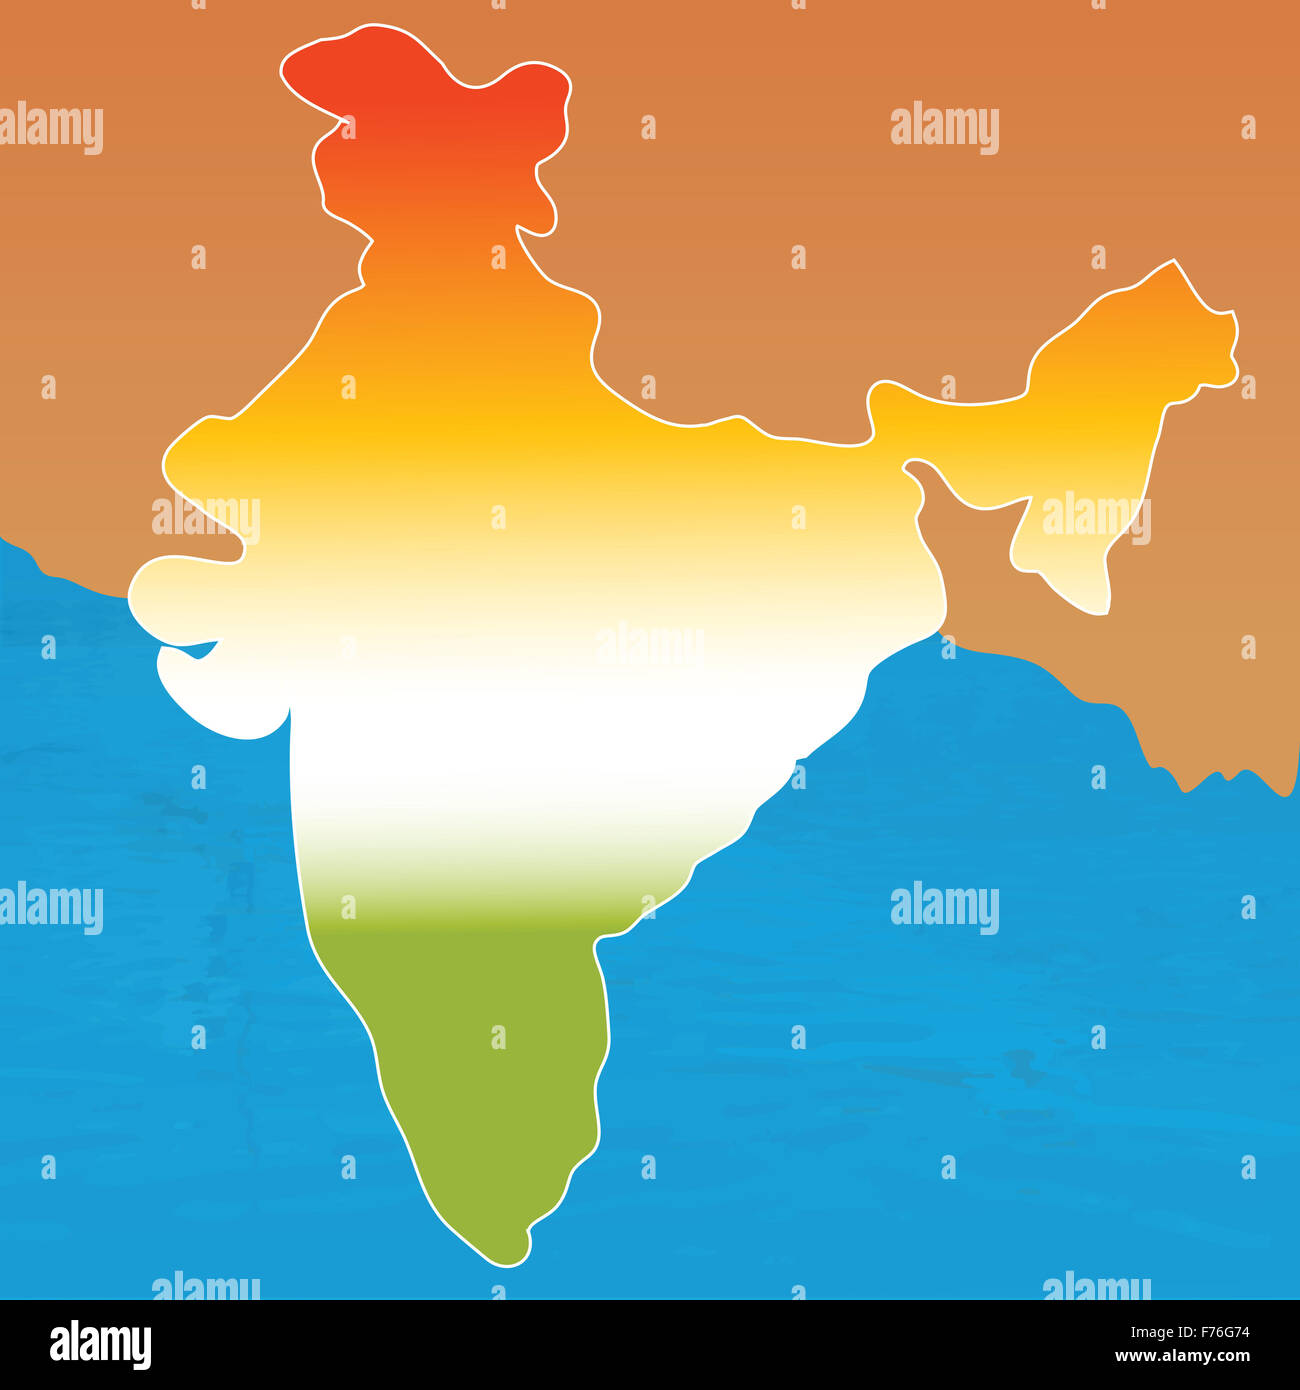 outline map of india in tri colors Stock Photo: 90498888 - Alamy on view map of india, monuments of india, the map of india, table of contents of india, reference map of india, draw map of india, blank map of india, county map of india, physical features of india, physical map of india, plan map of india, printable map of india, map of mountains in india, political map of india, latitude and longitude map of india, rivers of india, display map of india, map of ancient india, abstract map of india, shadow map of india,